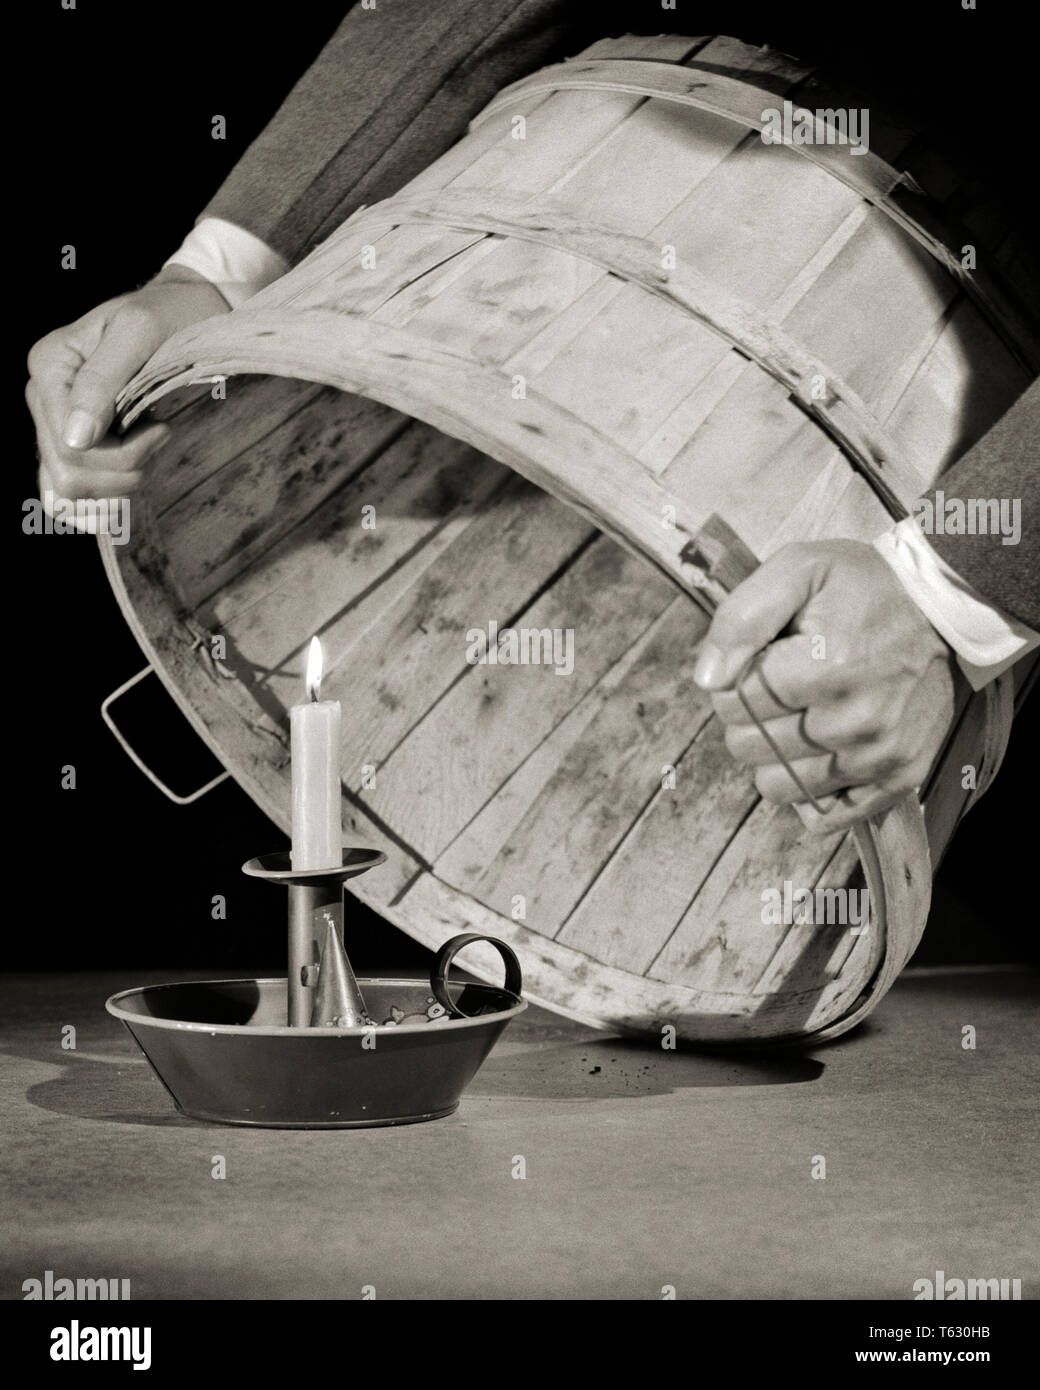 1940s MAN PUTTING A BUSHEL BASKET OVER A LIT CANDLE Do not conceal your talents or abilities DO NOT HIDE YOUR FAITH  - s2000 HAR001 HARS PARABLE CONCEAL FAITHFUL MAXIM OR SYMBOLIC CONCEPTS CREATIVITY FAITH MID-ADULT MID-ADULT MAN SCRIPTURE SPIRITUAL TALENTS BELIEF BLACK AND WHITE CAUCASIAN ETHNICITY HANDS ONLY HAR001 INSPIRATIONAL OLD FASHIONED REPRESENTATION - Stock Image